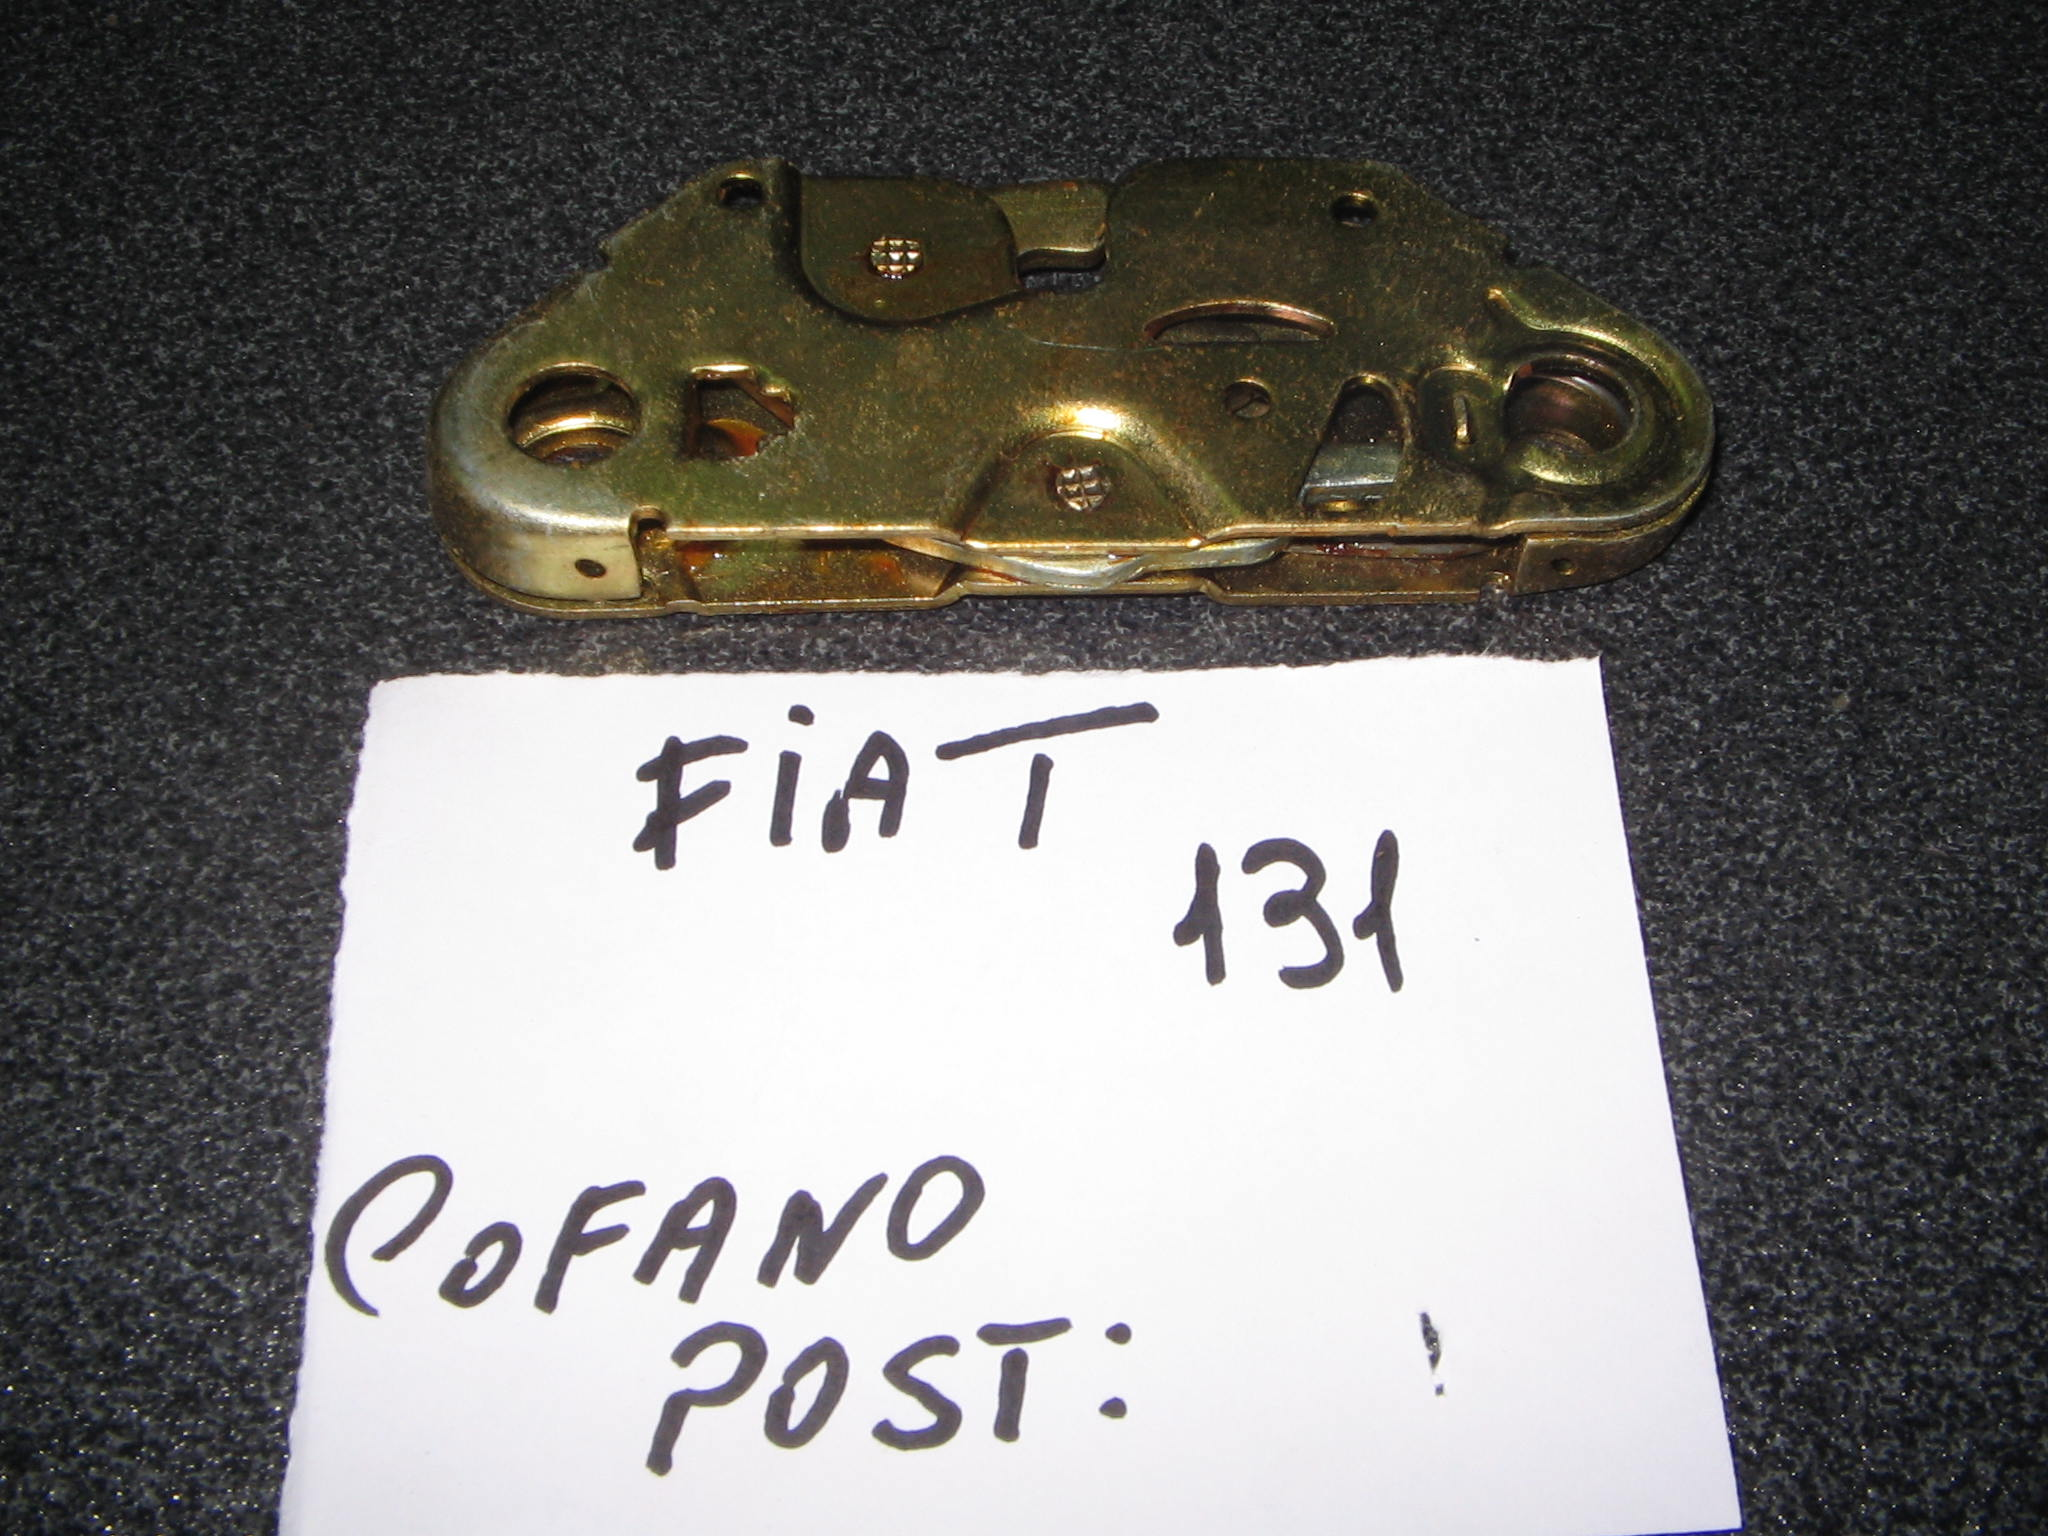 FIAT  131  SERRATURA  COFANO  POST.  ART 1.182